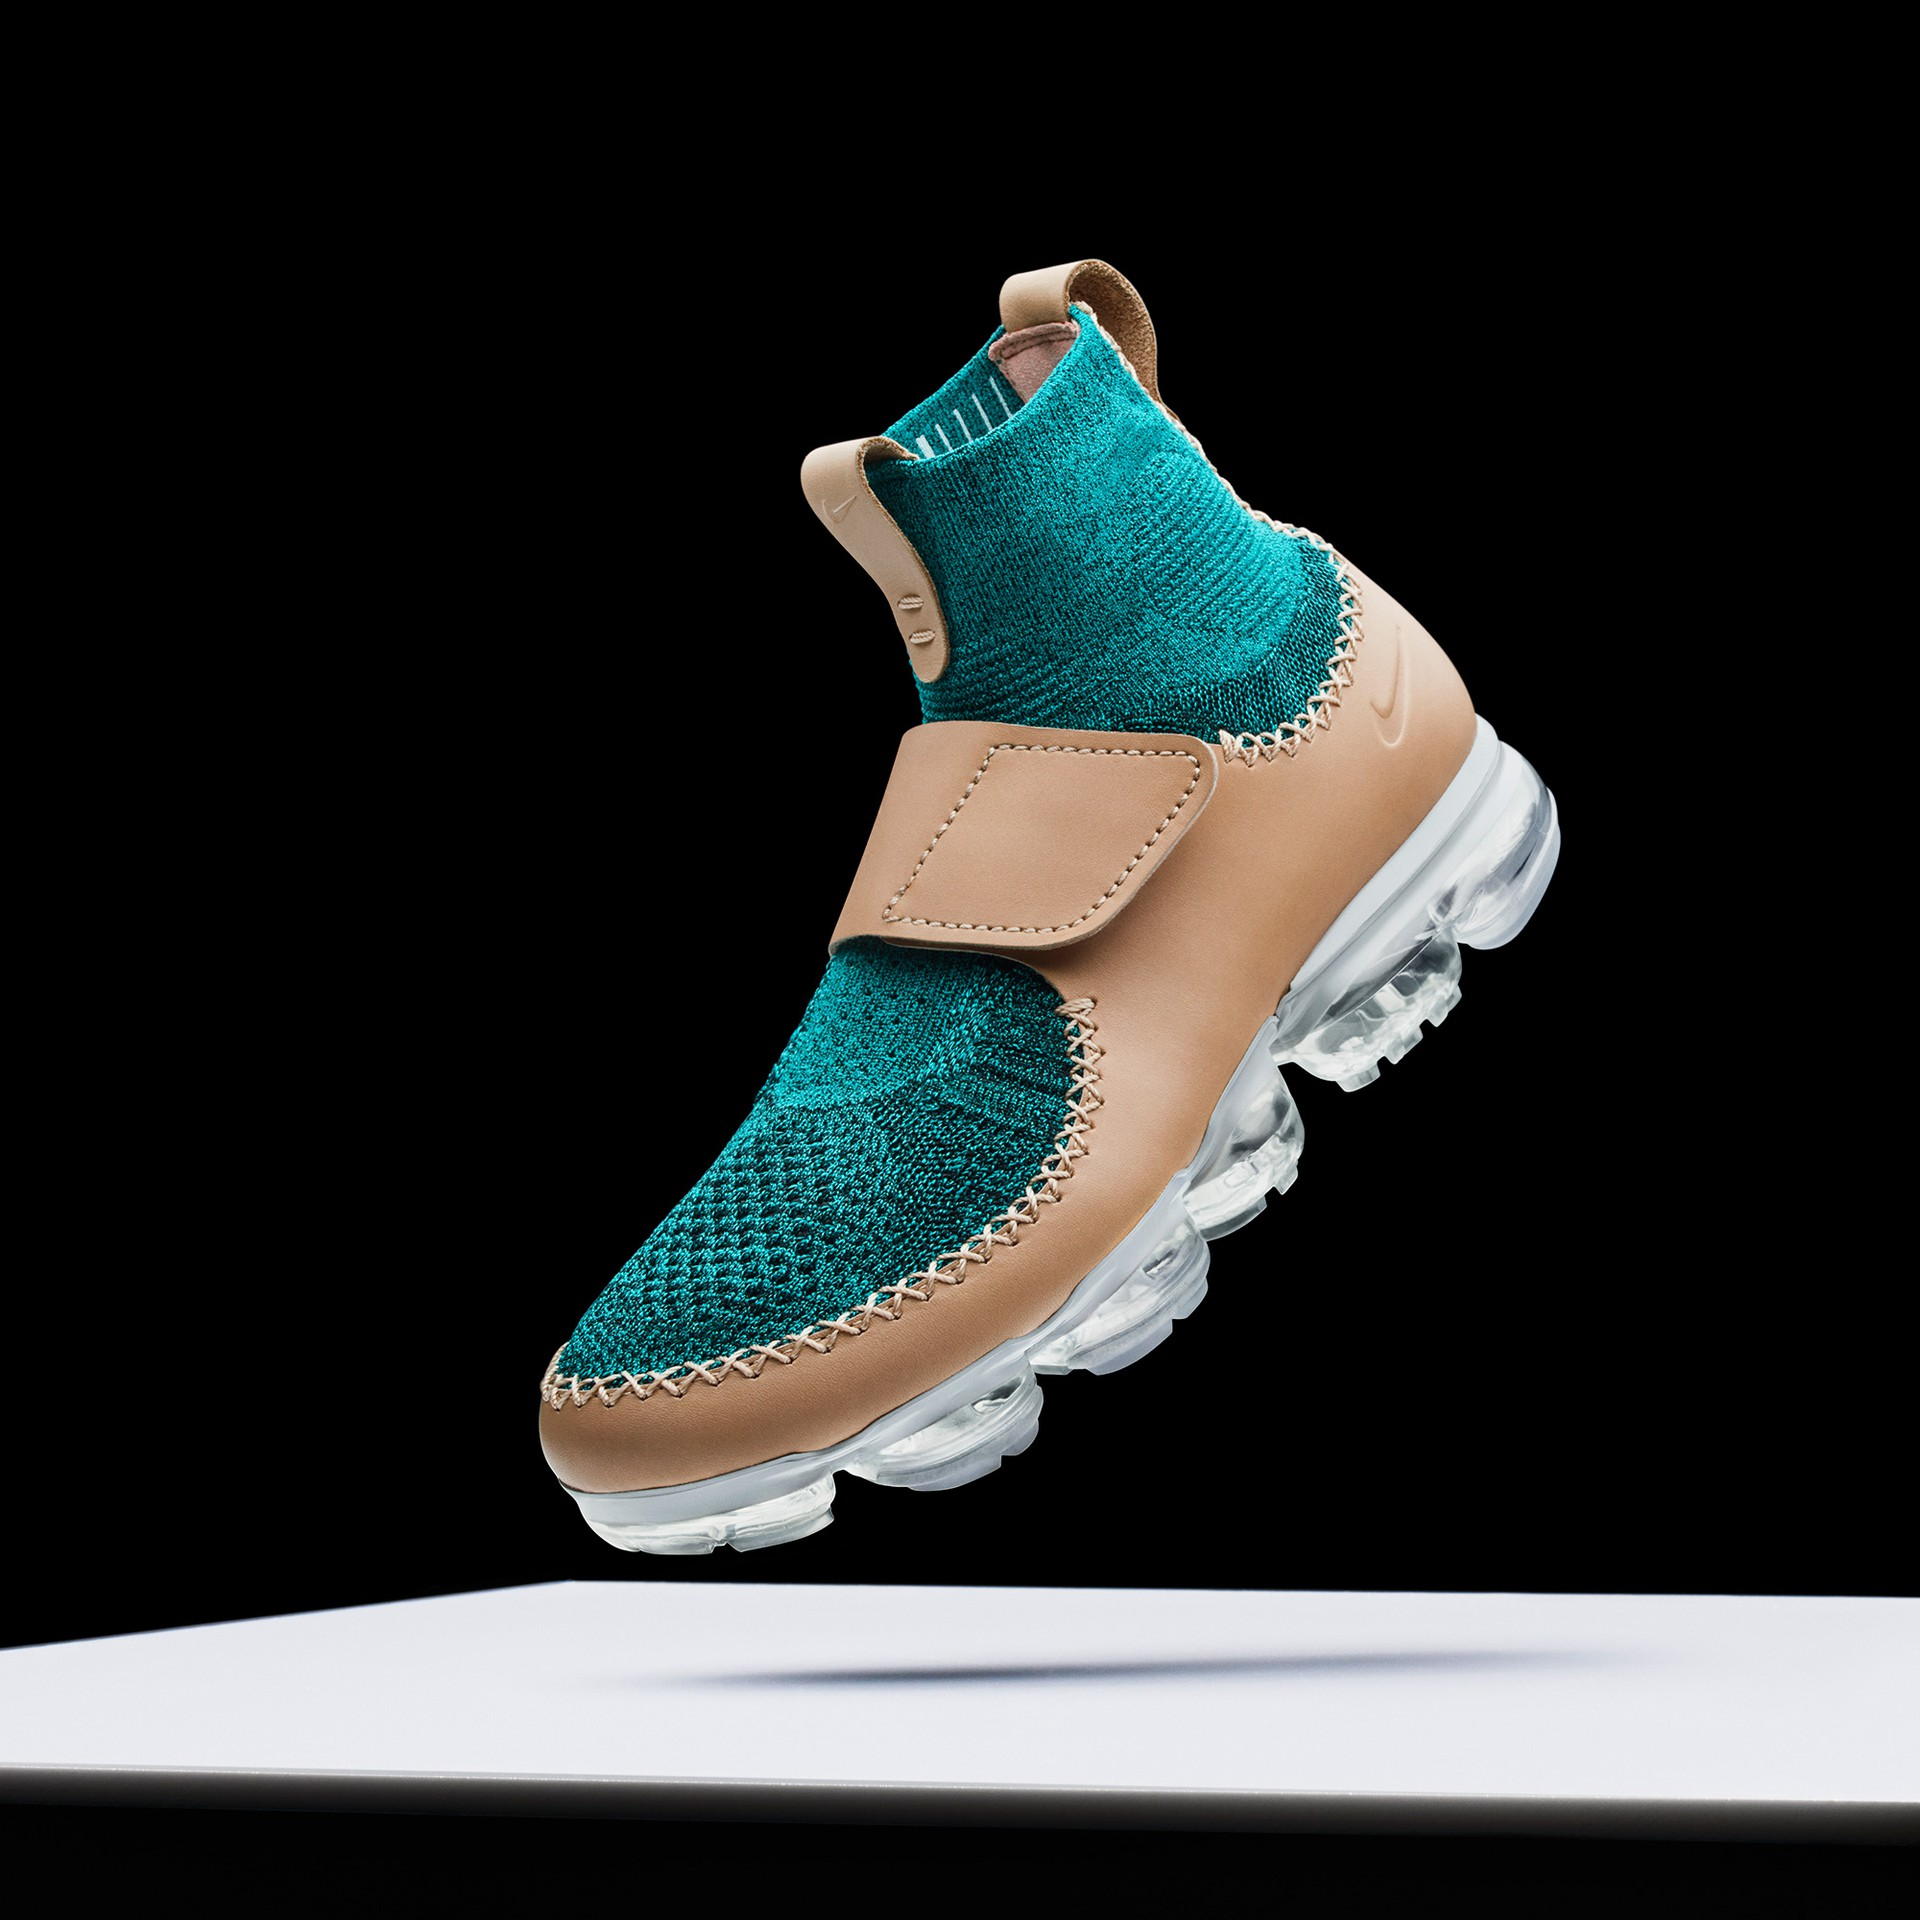 separation shoes d92a4 a6522 NikeLab Air VaporMax